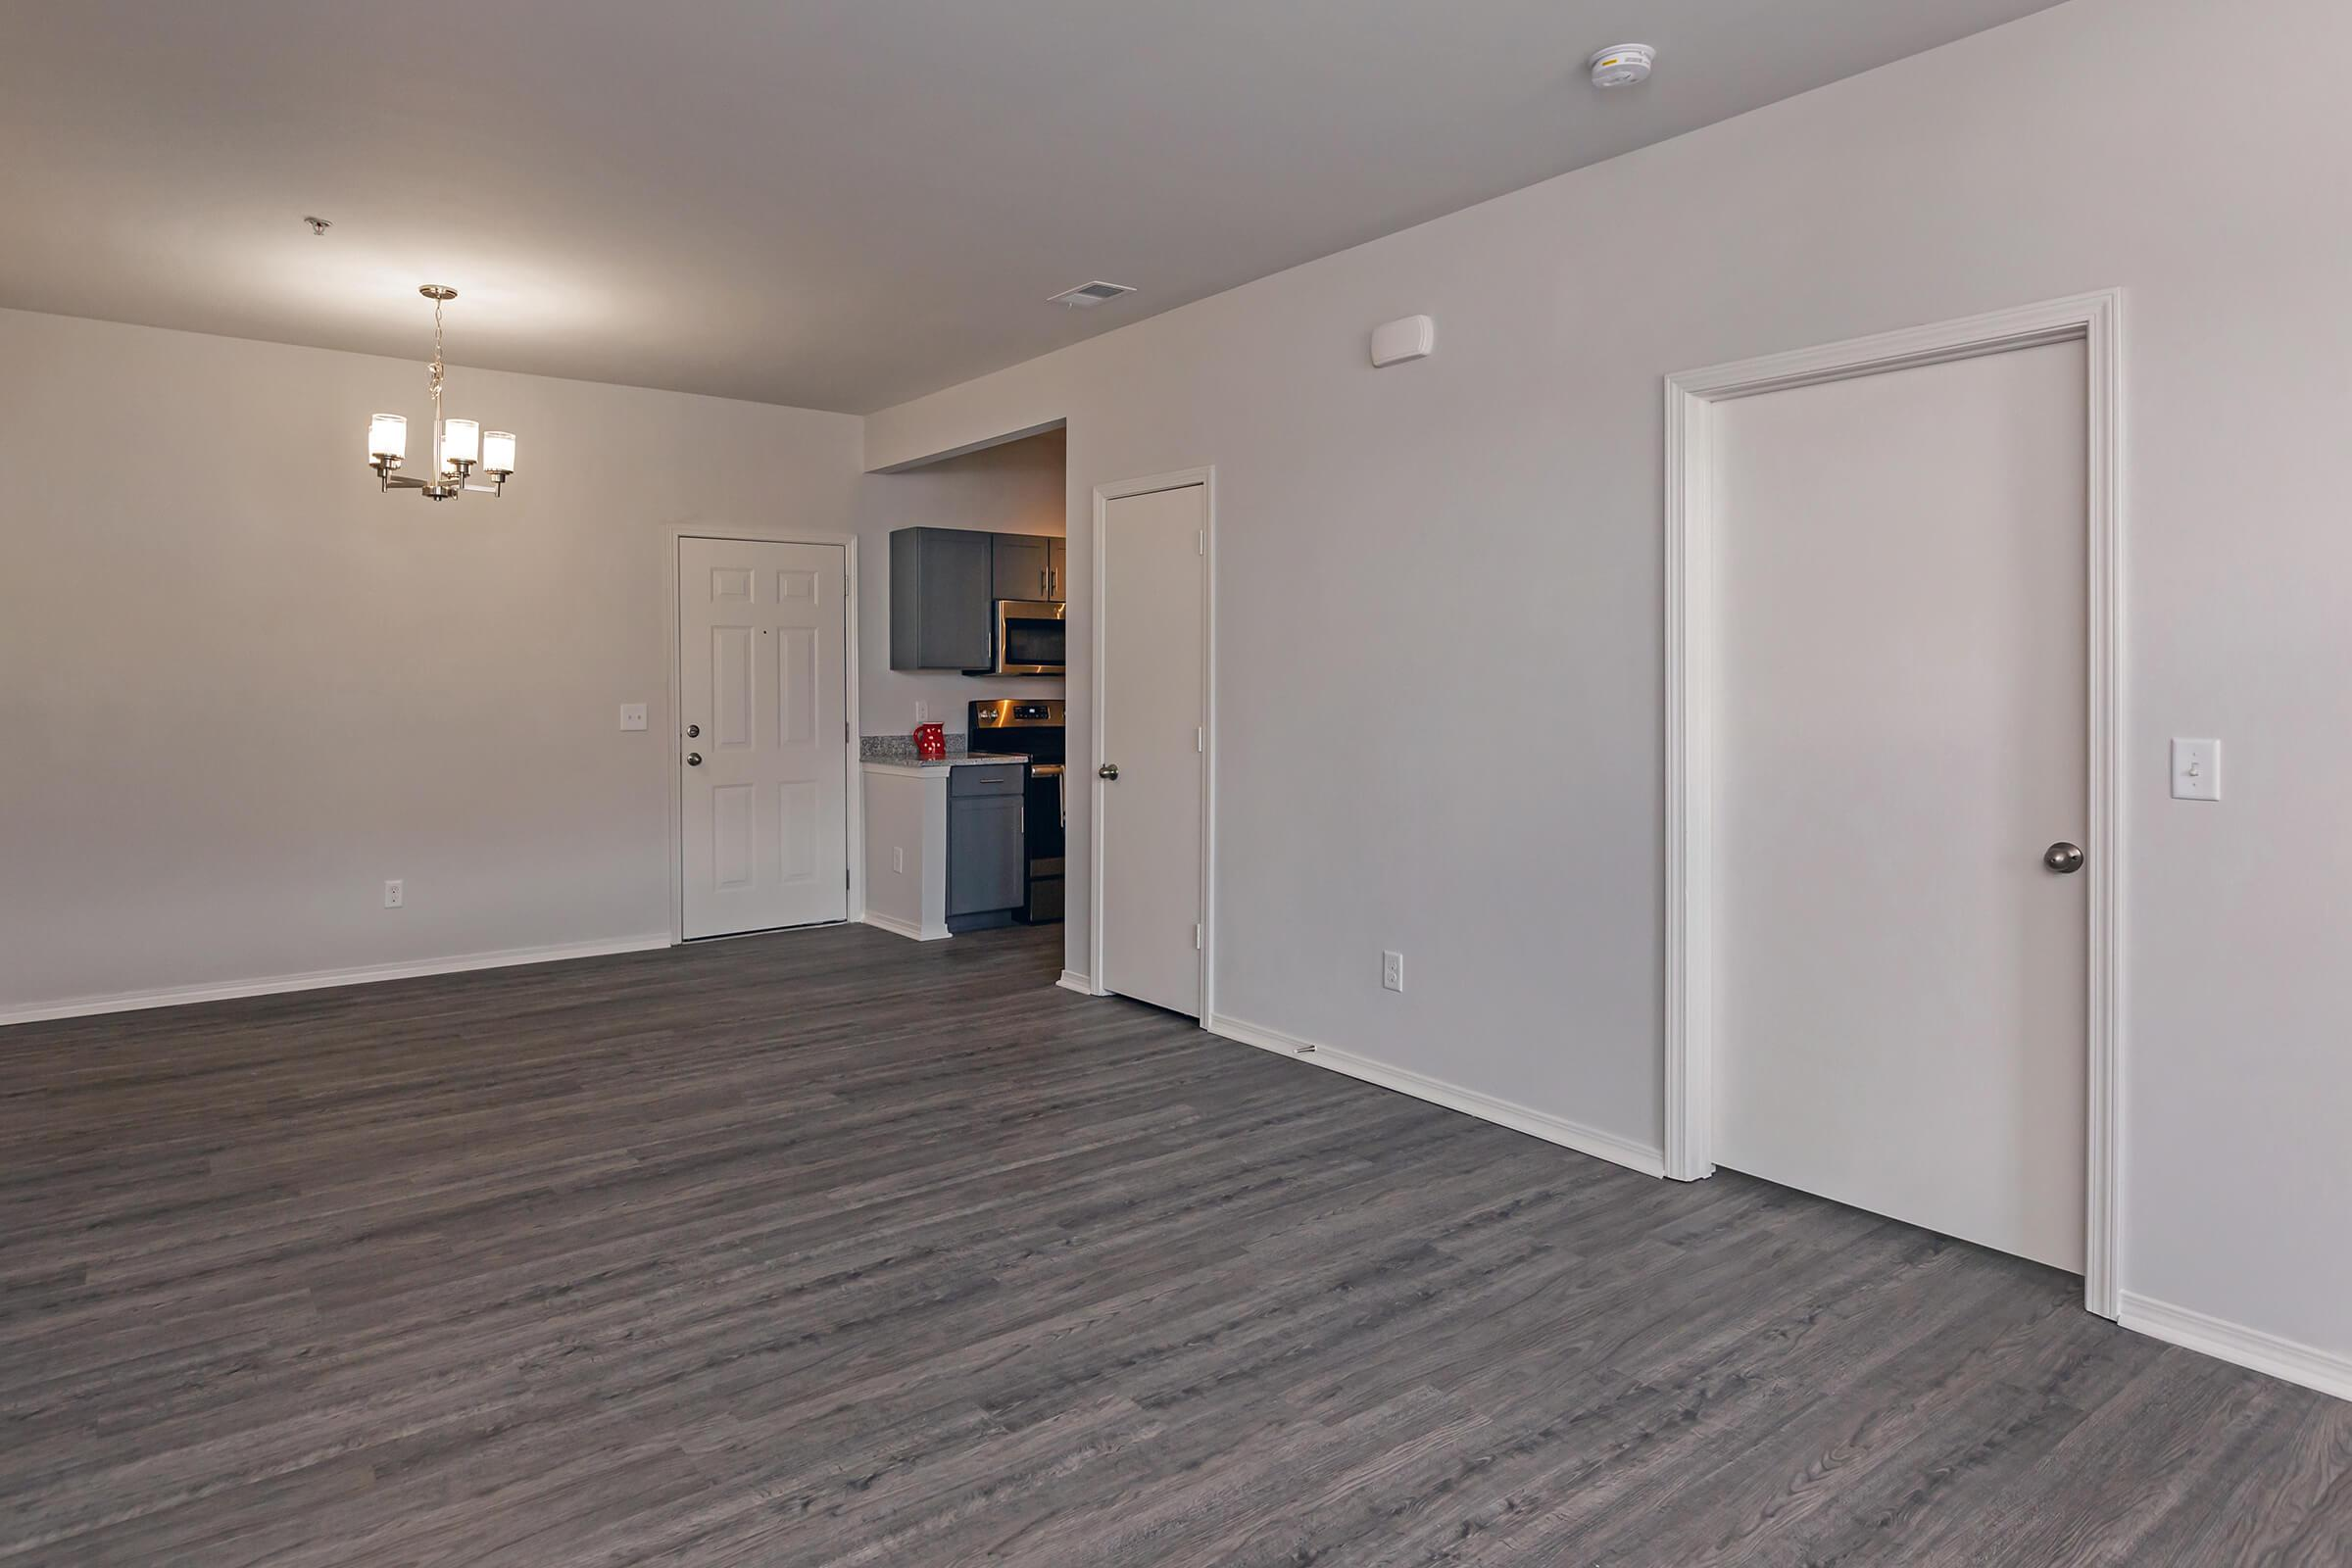 Enjoy Faux Wood Flooring At New Providence Park In Wilmington, NC